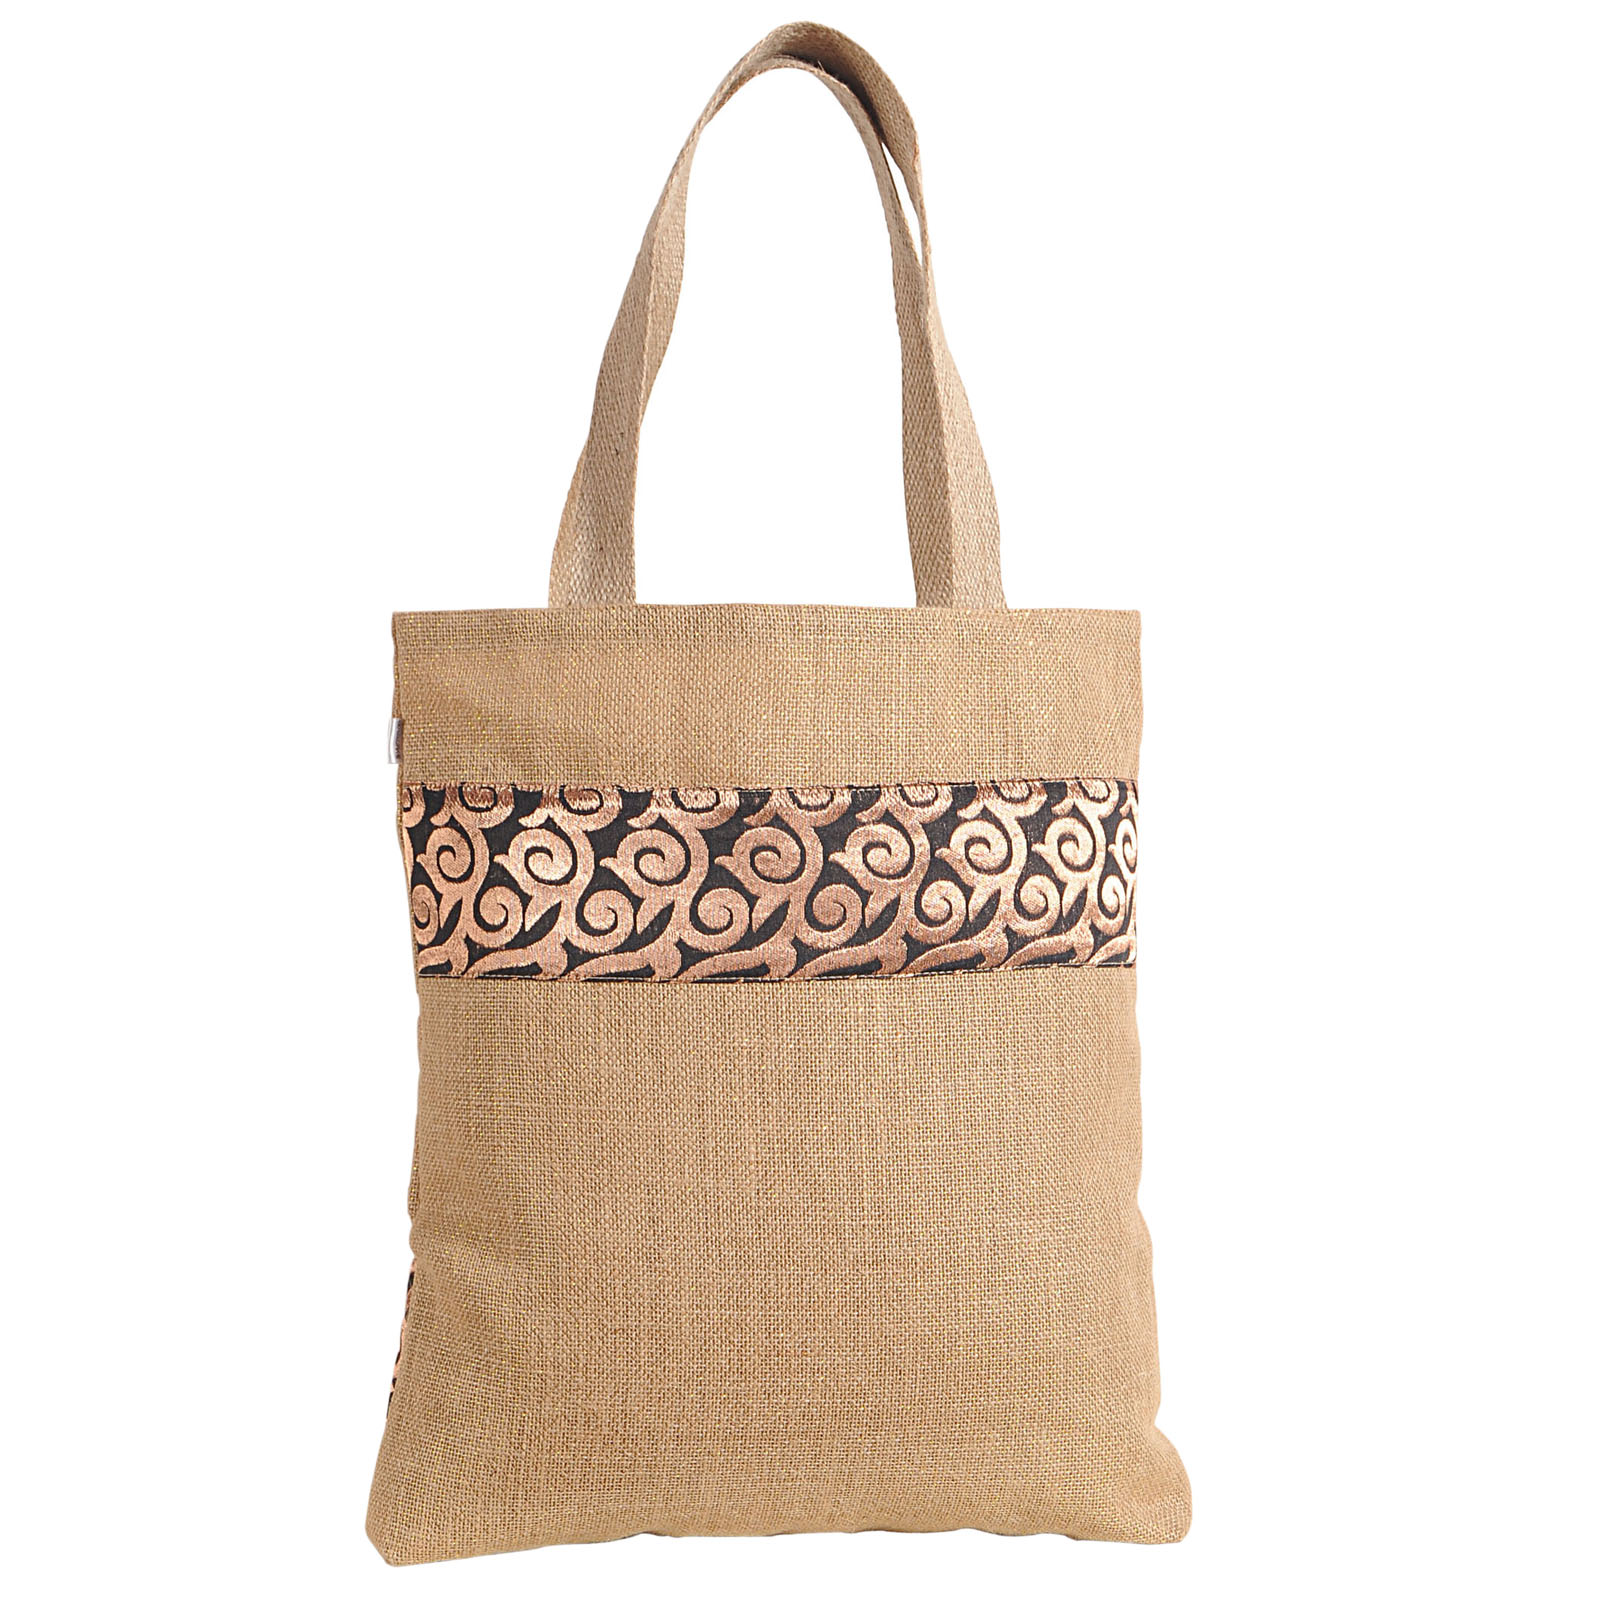 New Fashion Women Jute Shoulder Handbag Tote